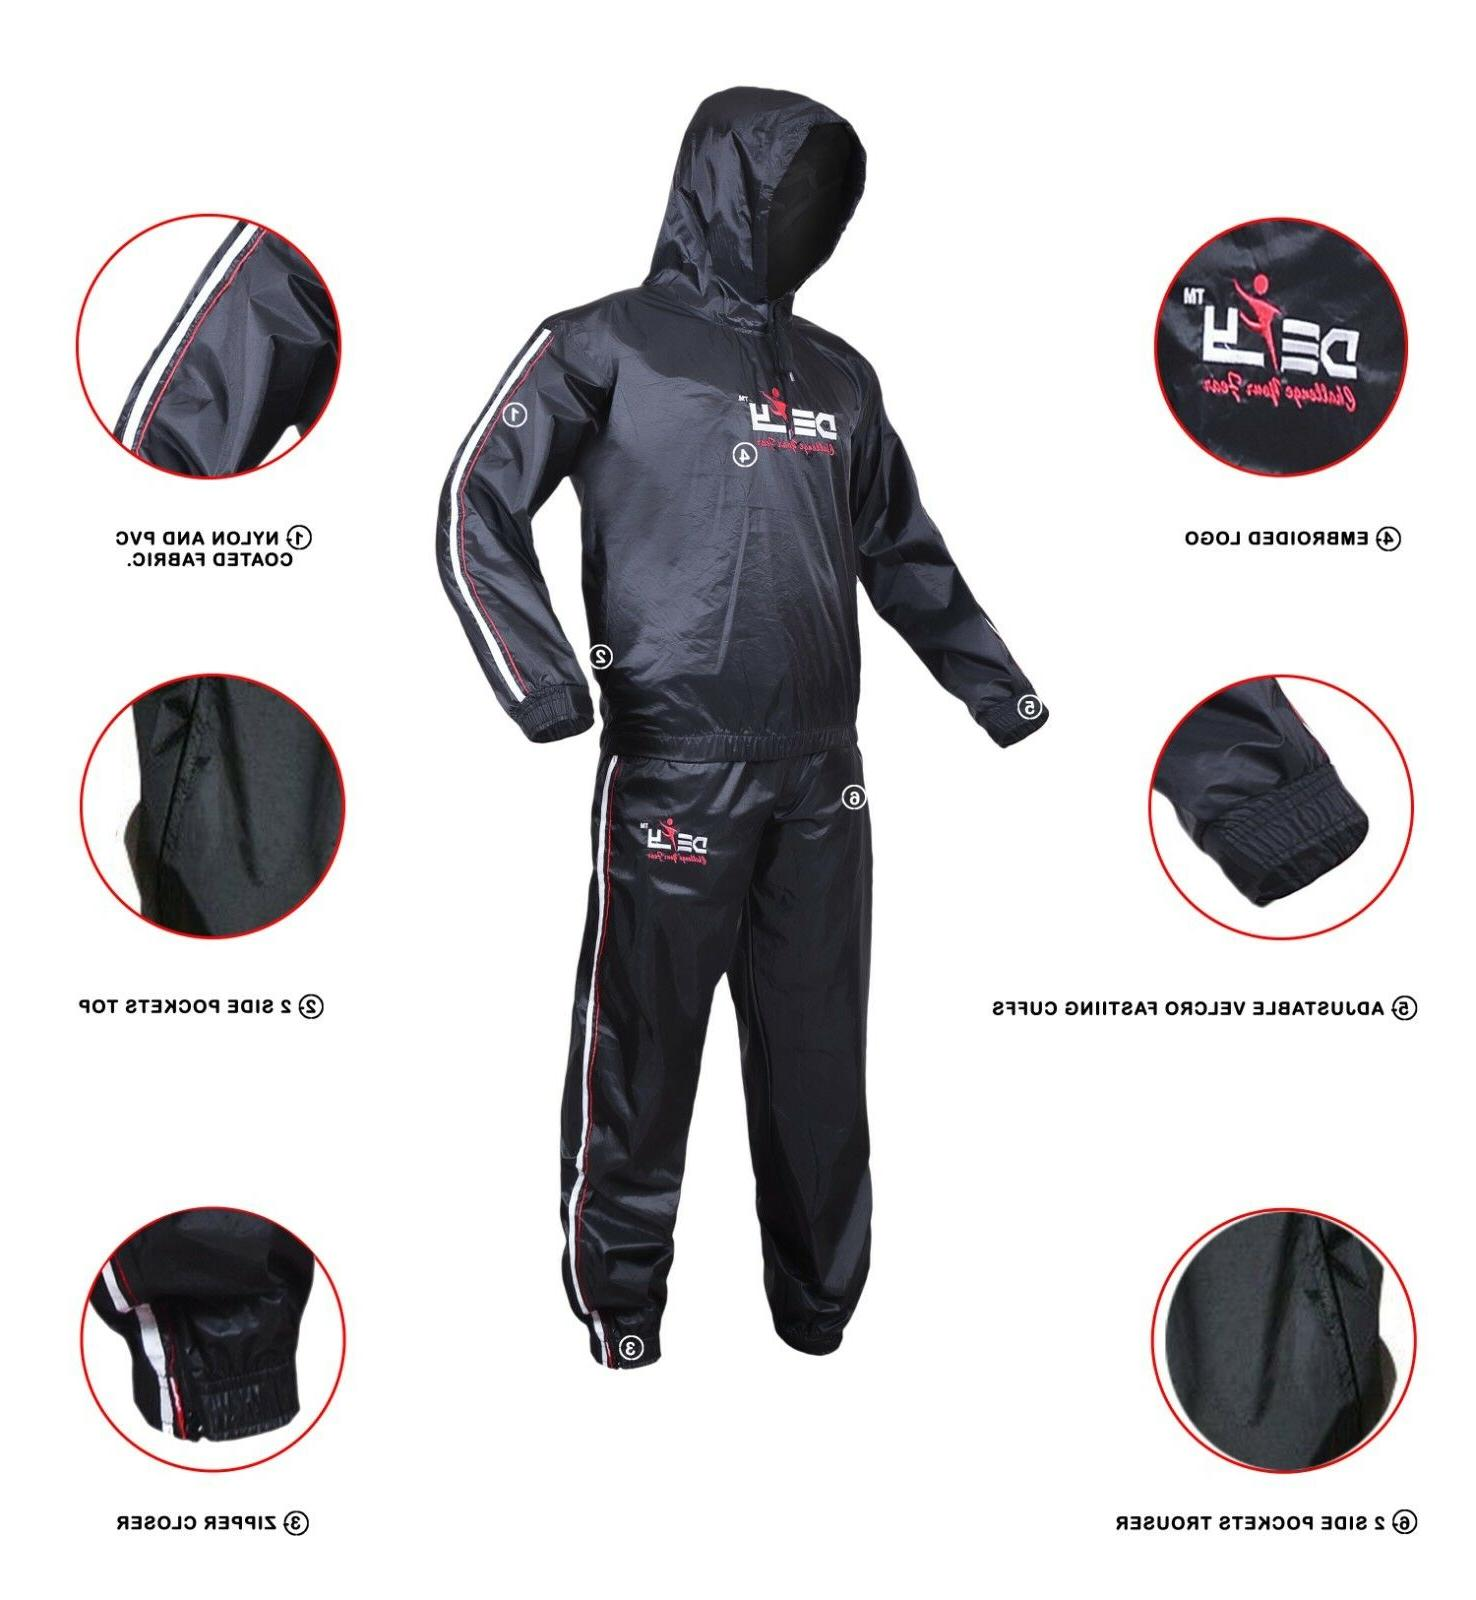 Heavy DEFY Sweat Suit Exercise Suit Fitness Loss Anti-Rip